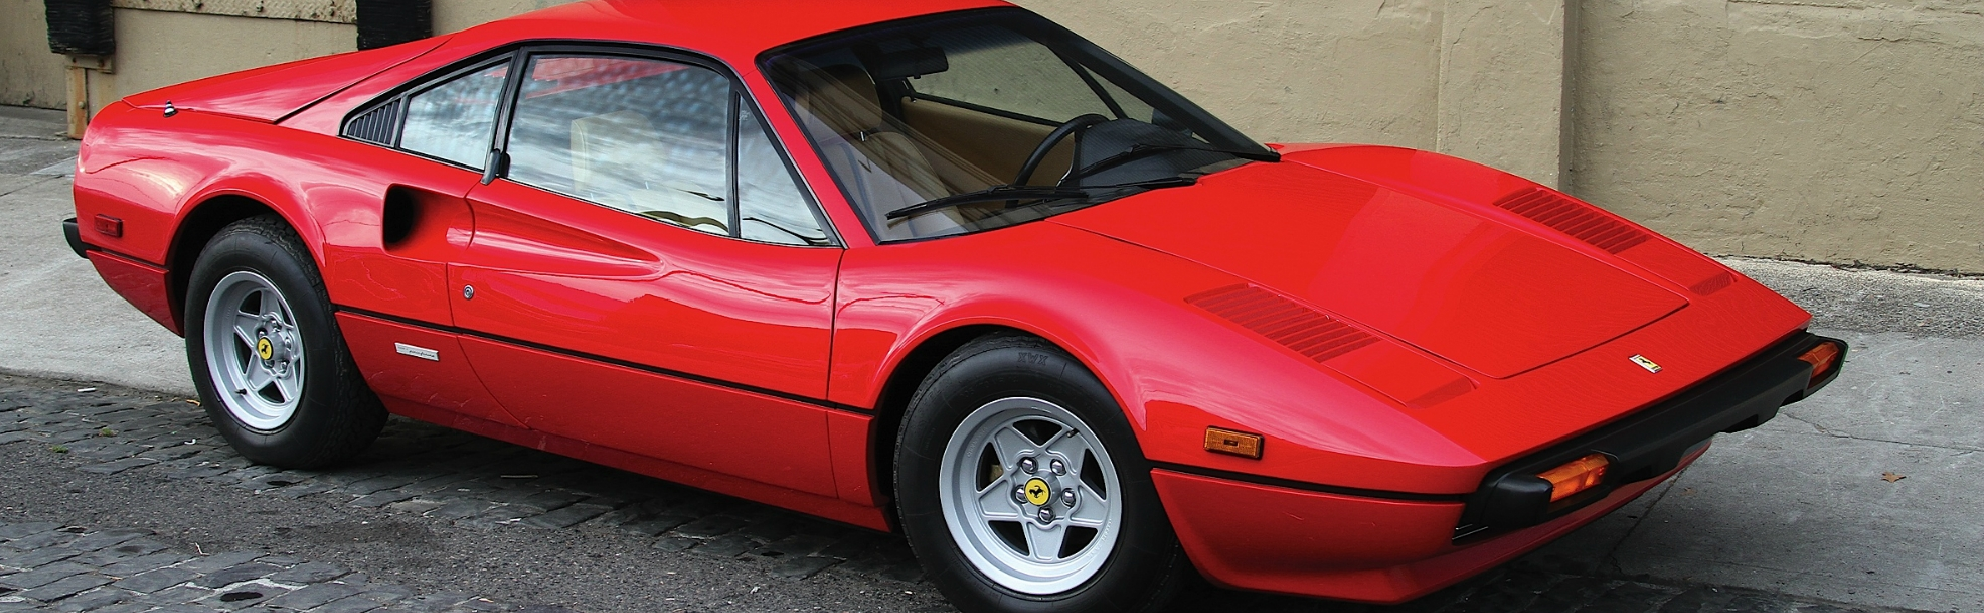 "Thanks to the extra attention to detail that was provided by U.S. Customs and Border Protection, a stolen 1981 Ferrari 308 GTSi bound for Poland was discovered and retrieved. Border Protection agents became suspicious of the fiery red Ferrari that was made famous by Tom Selleck who drove a similar example of this model for 8 seasons on ""Magnum P.I."" when the vehicle identification number came back to a 1982 Ferrari GTS that was exported to Norway in 2005."